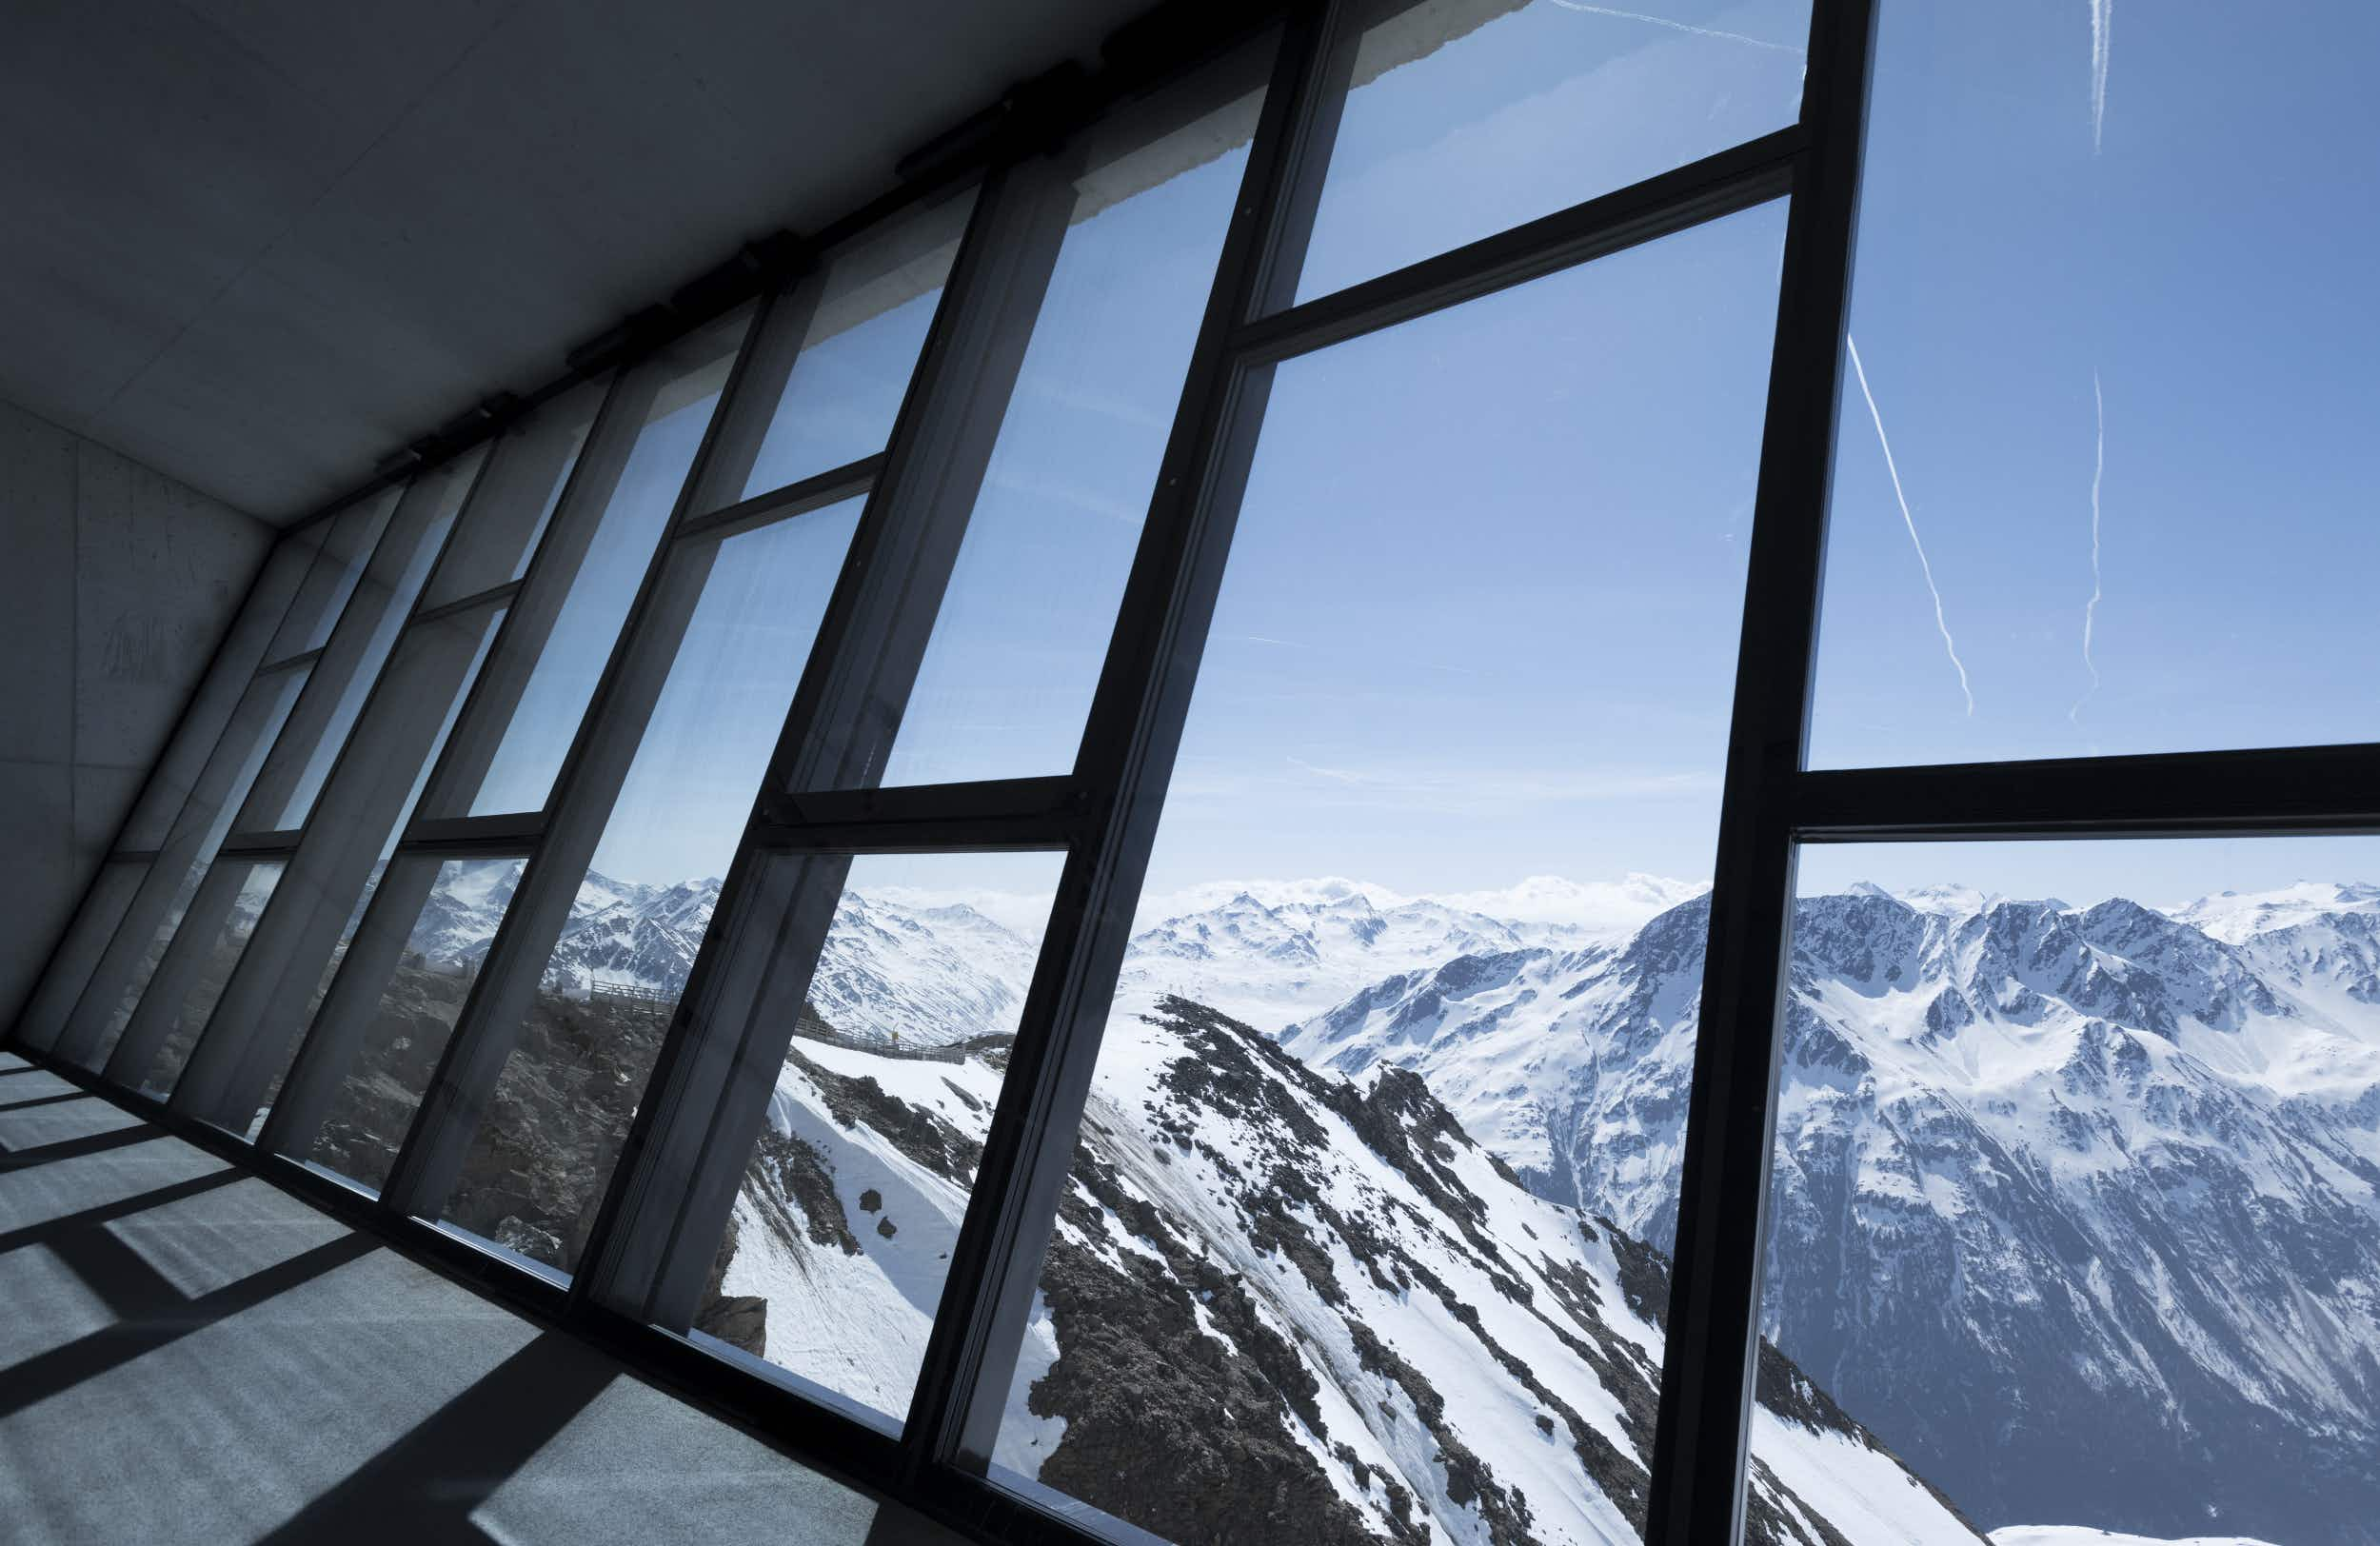 A James Bond museum is set to open inside the summit of a mountain